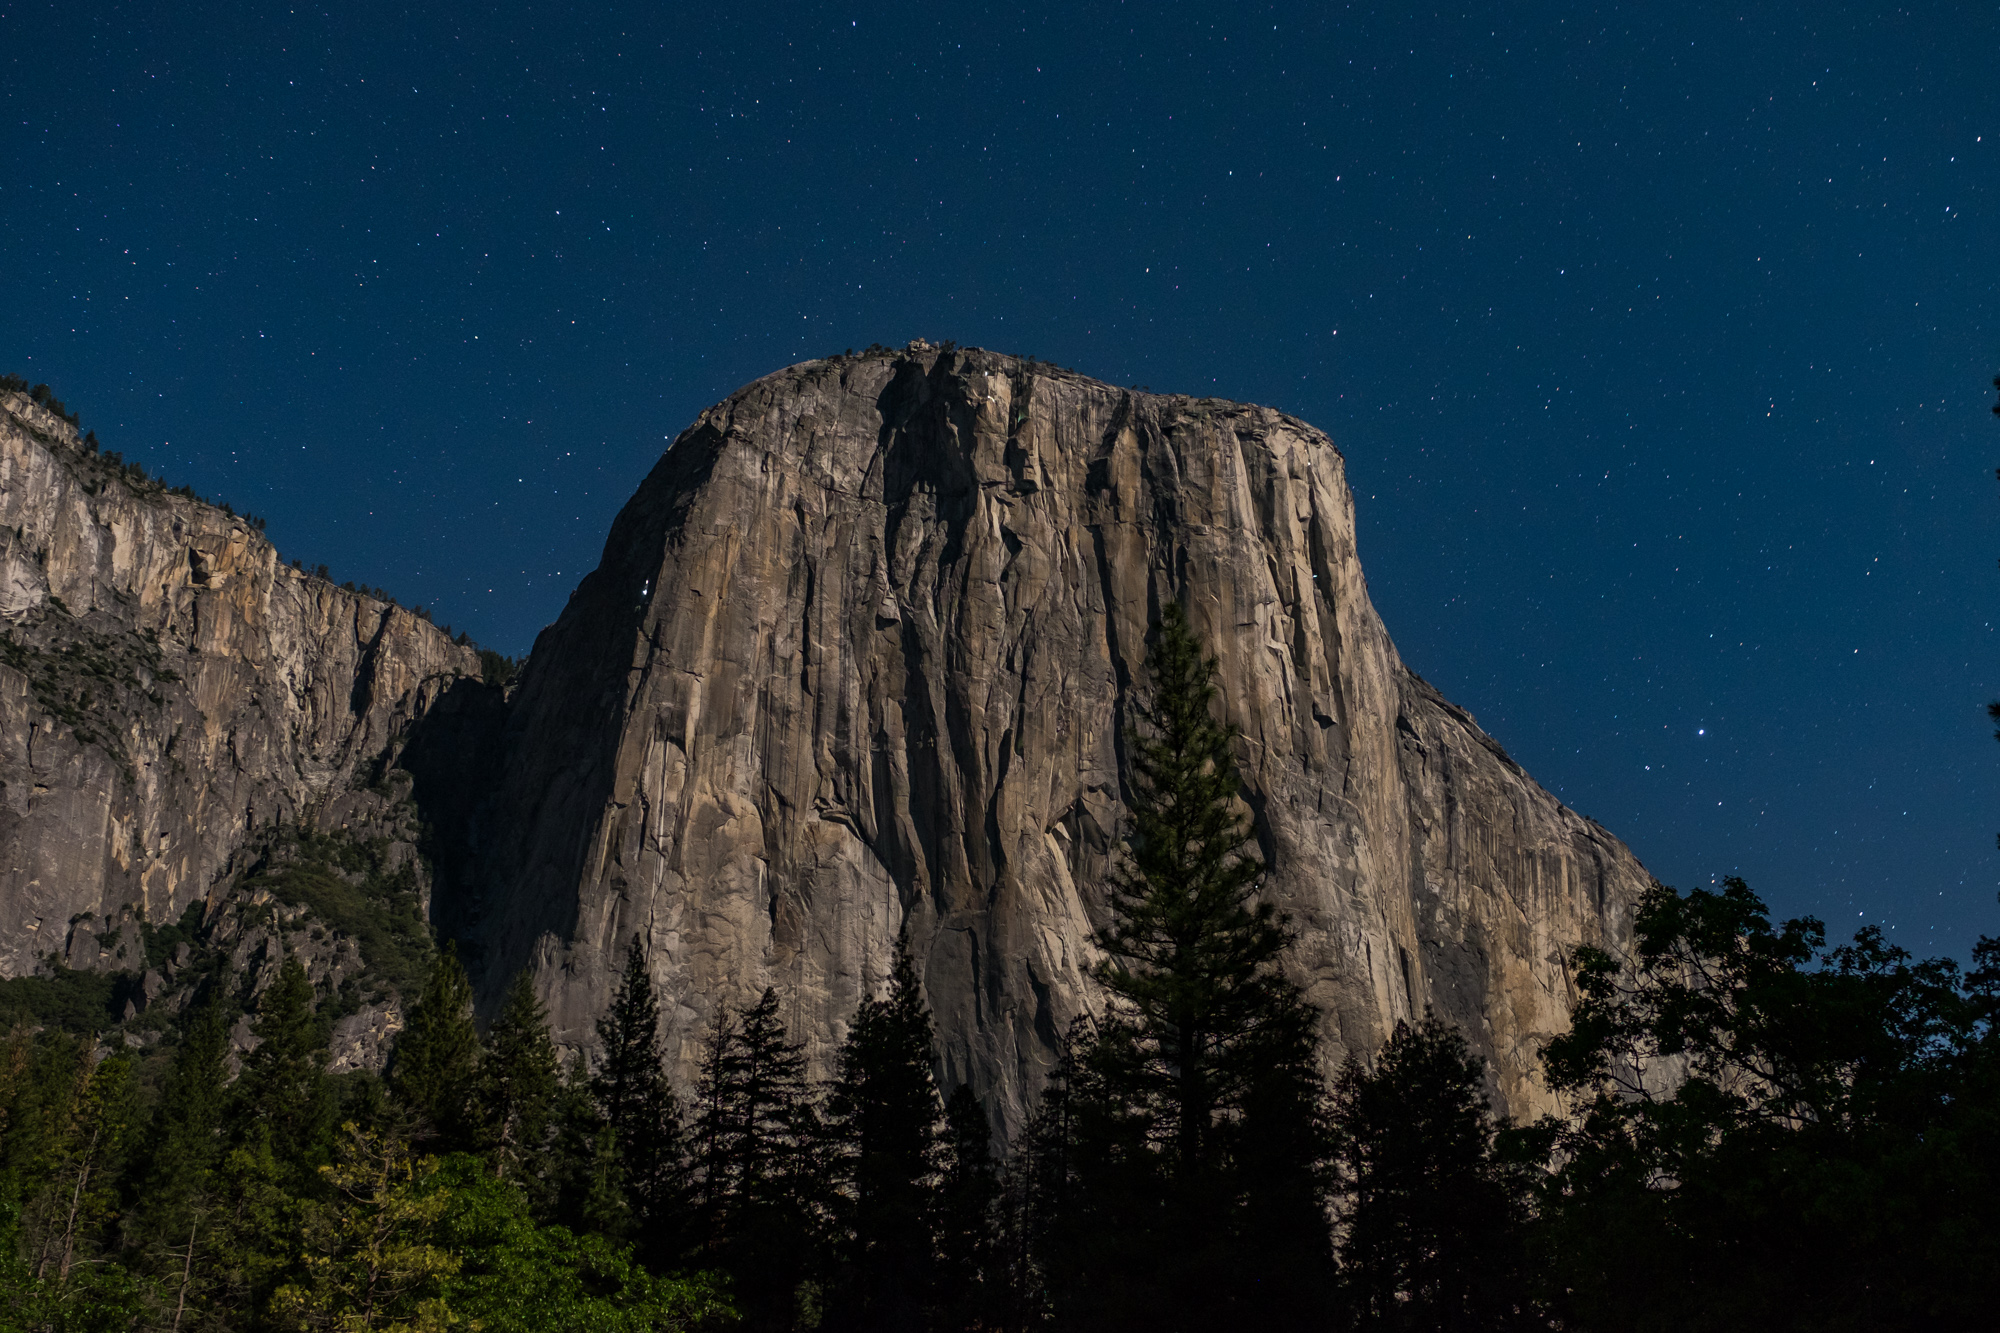 At night, the lights of the climber's on El Capitan light up like the stars in the sky. Can you see them?